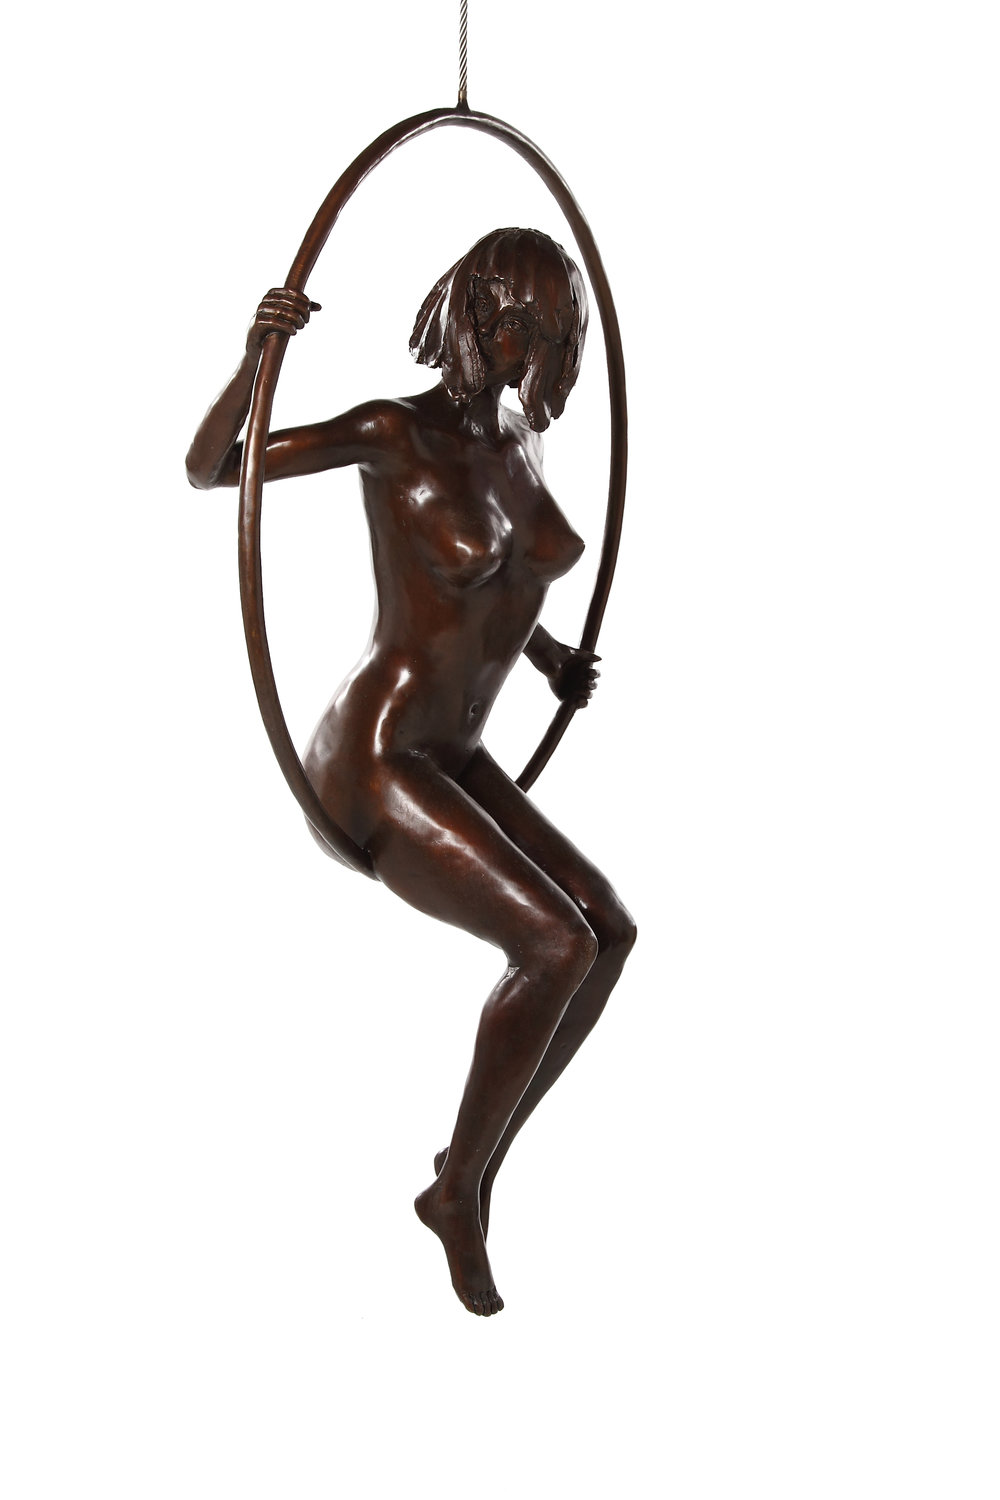 Bronze by Marke Meyer entitled A World of Possibilities